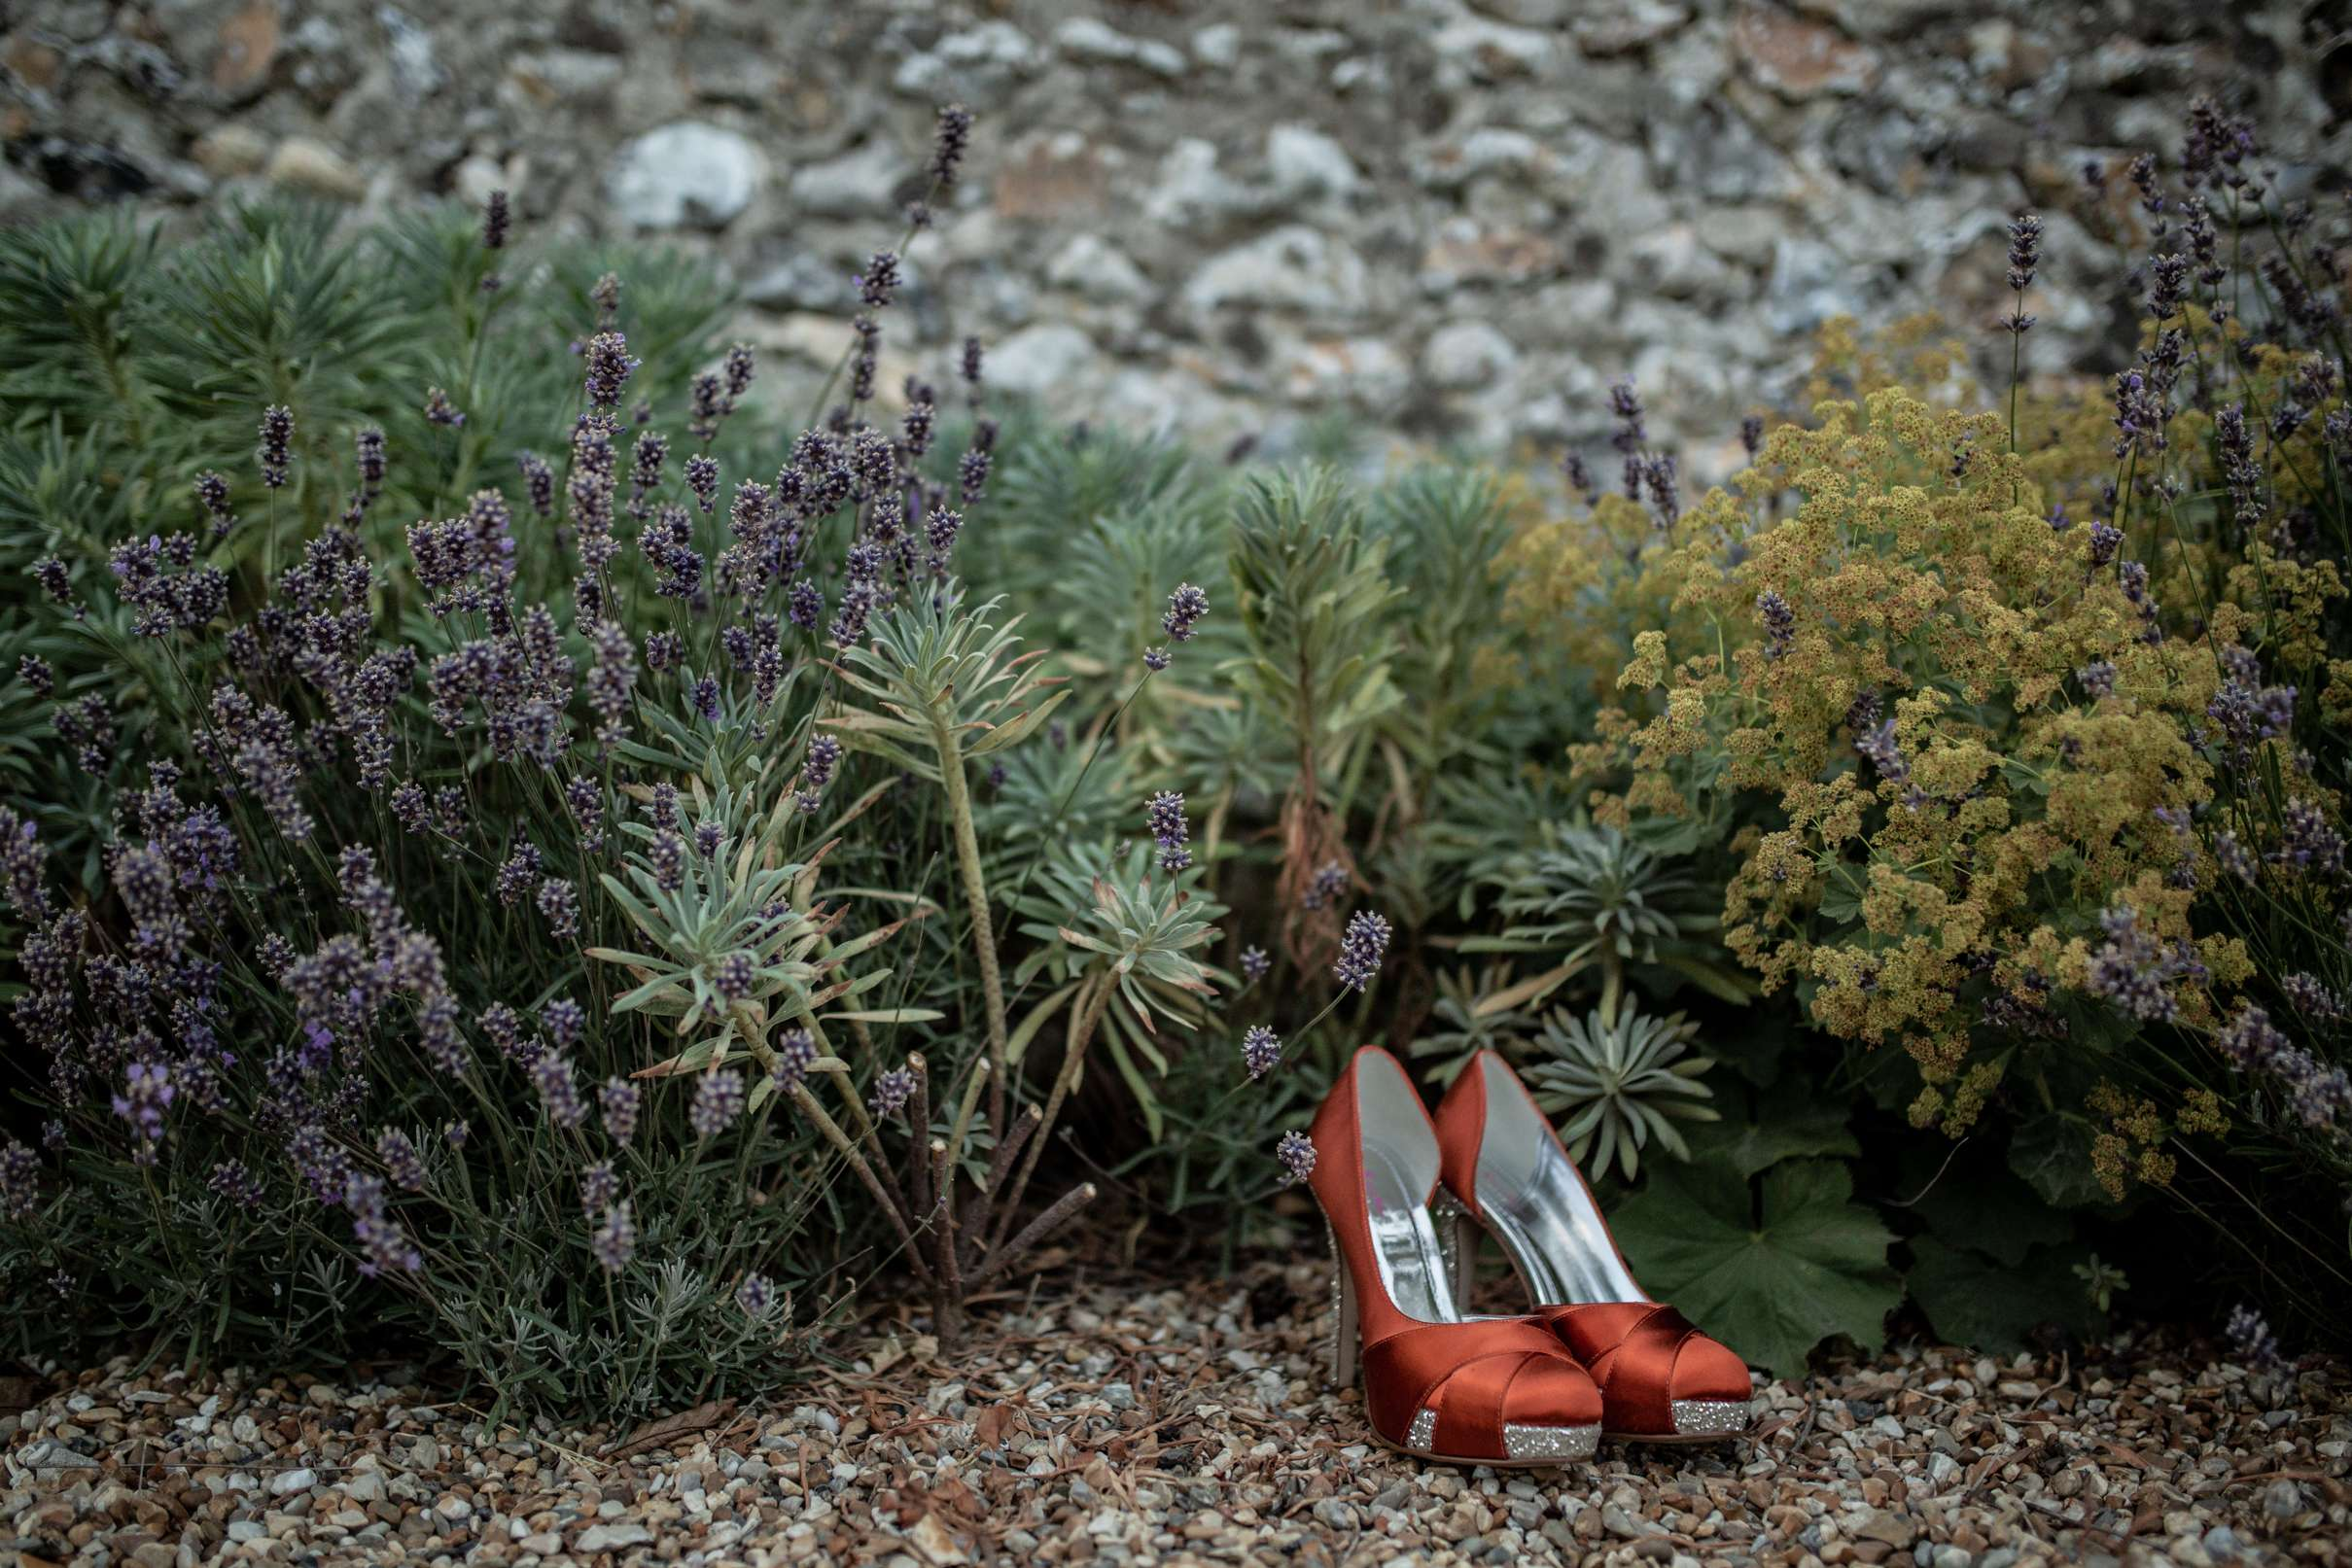 A photo of orange wedding shoes taken against a rustic backdrop at Chidham barn, Chichester